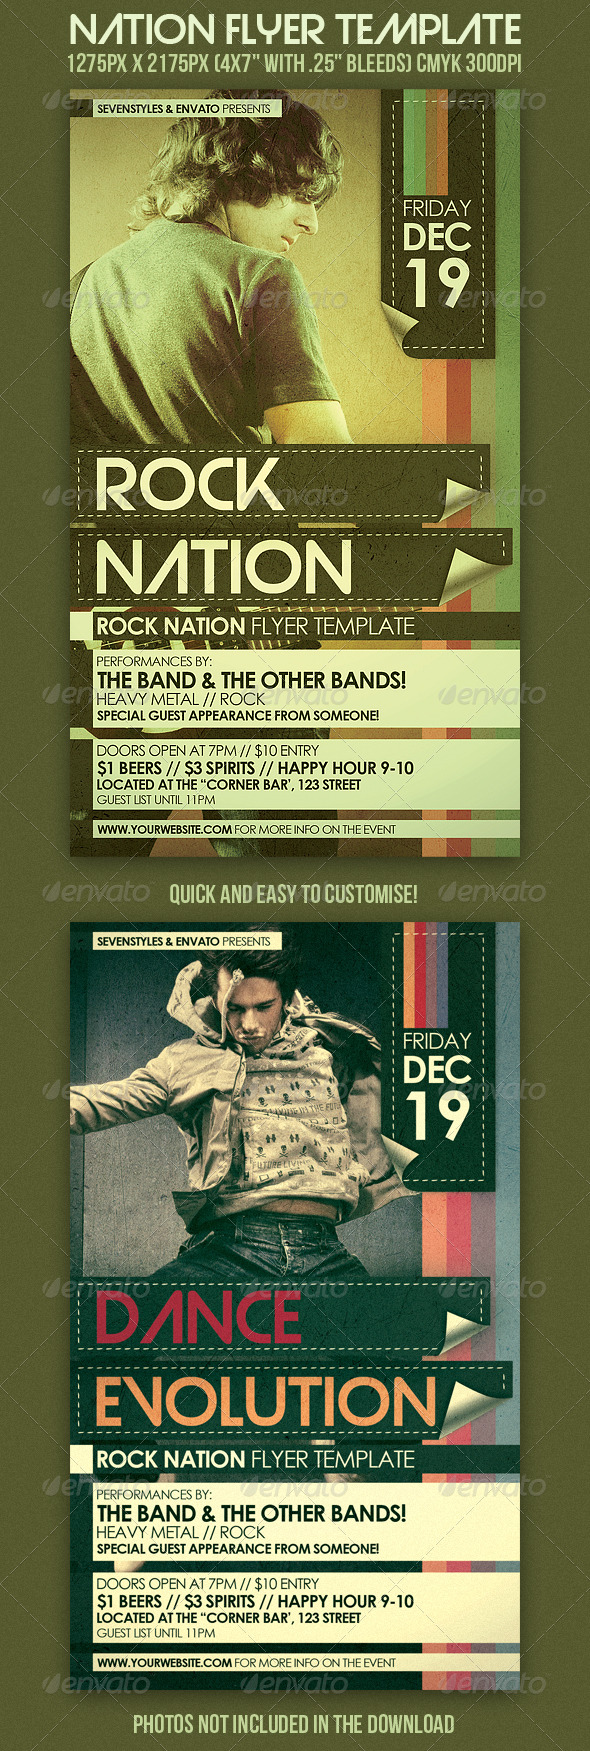 GraphicRiver Nation Flyer Template 239695